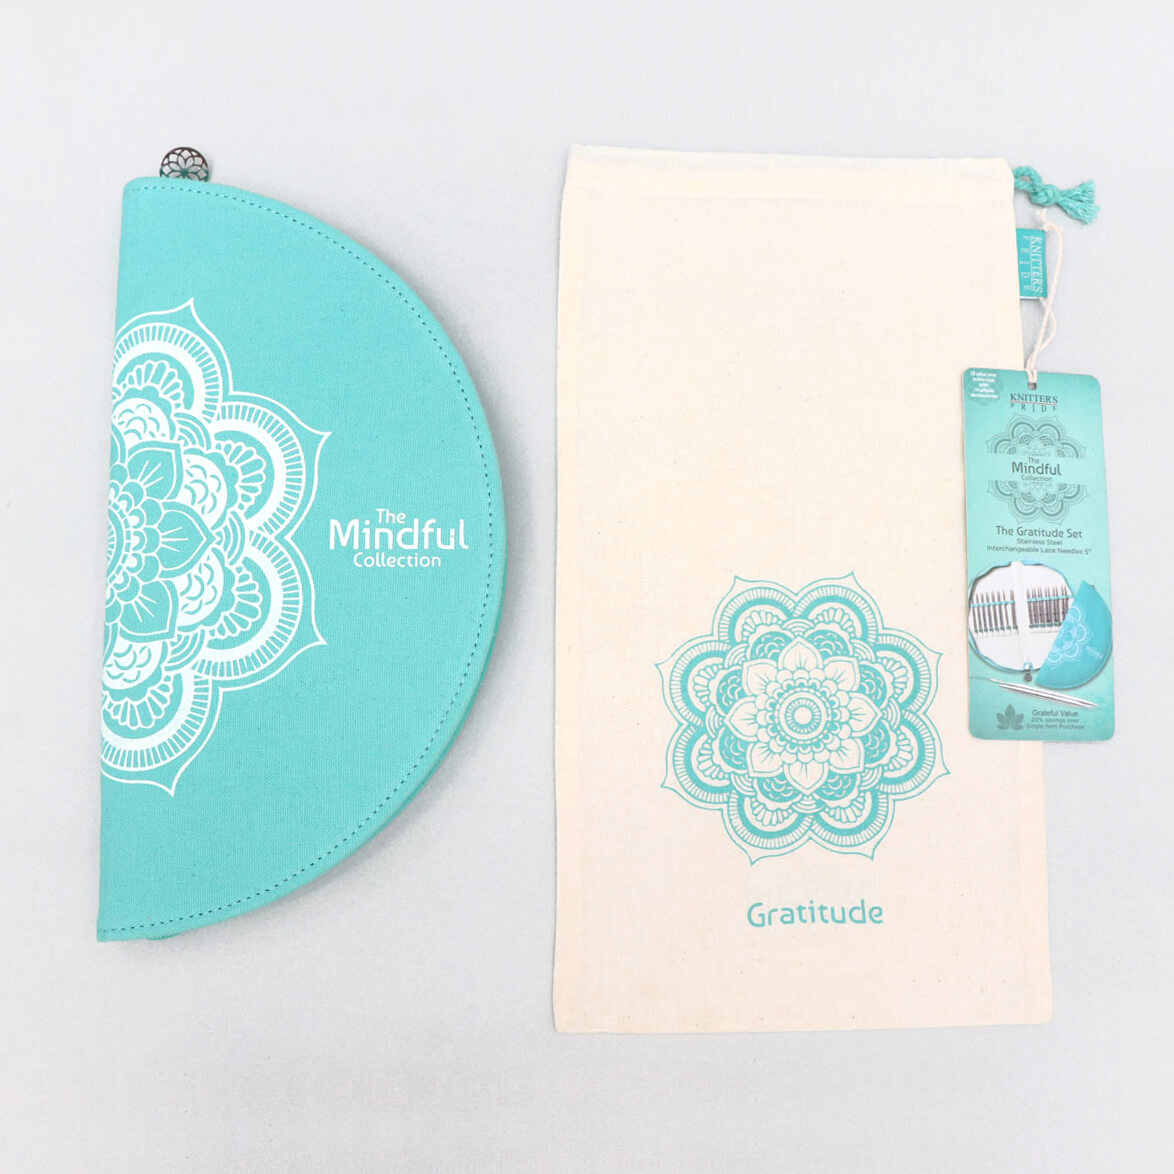 The Mindful Collection Needle Set, Gratitude Set